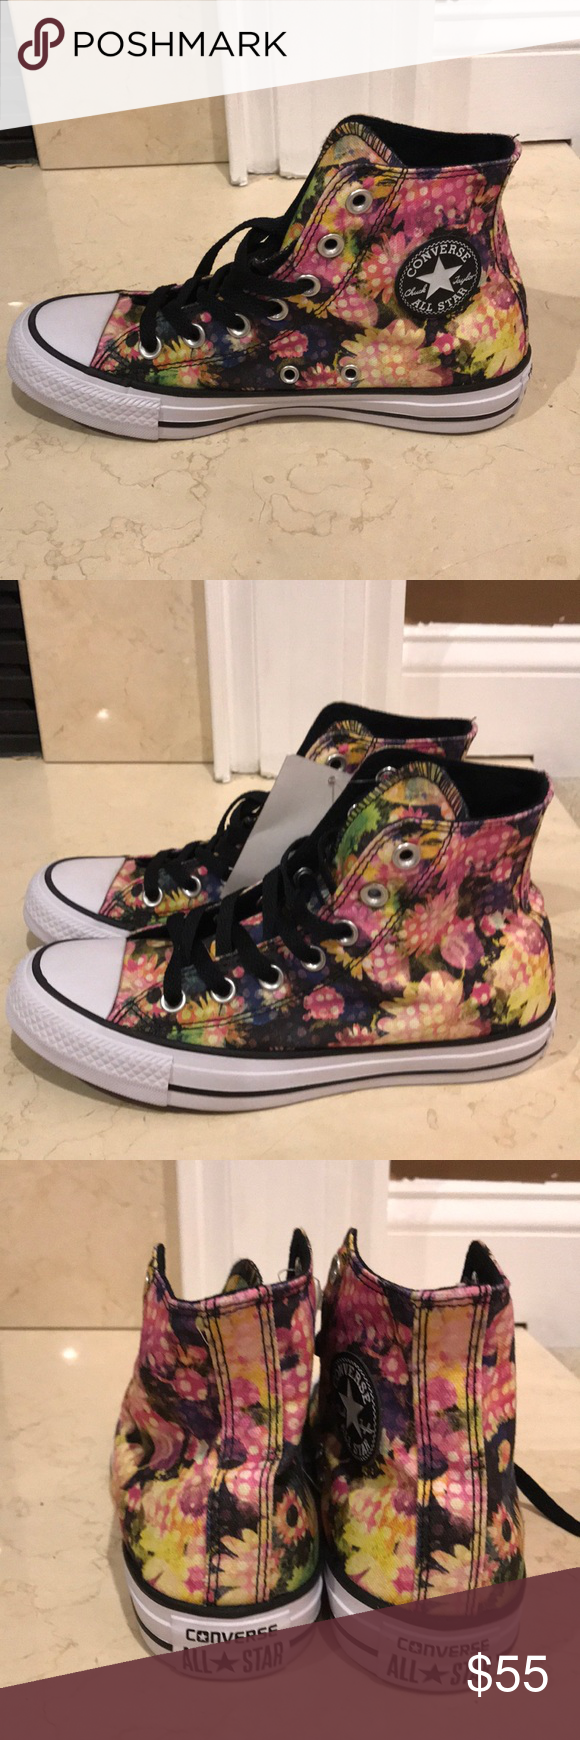 25eb51f2a4c6 NWOB Converse floral high top sneakers size 6